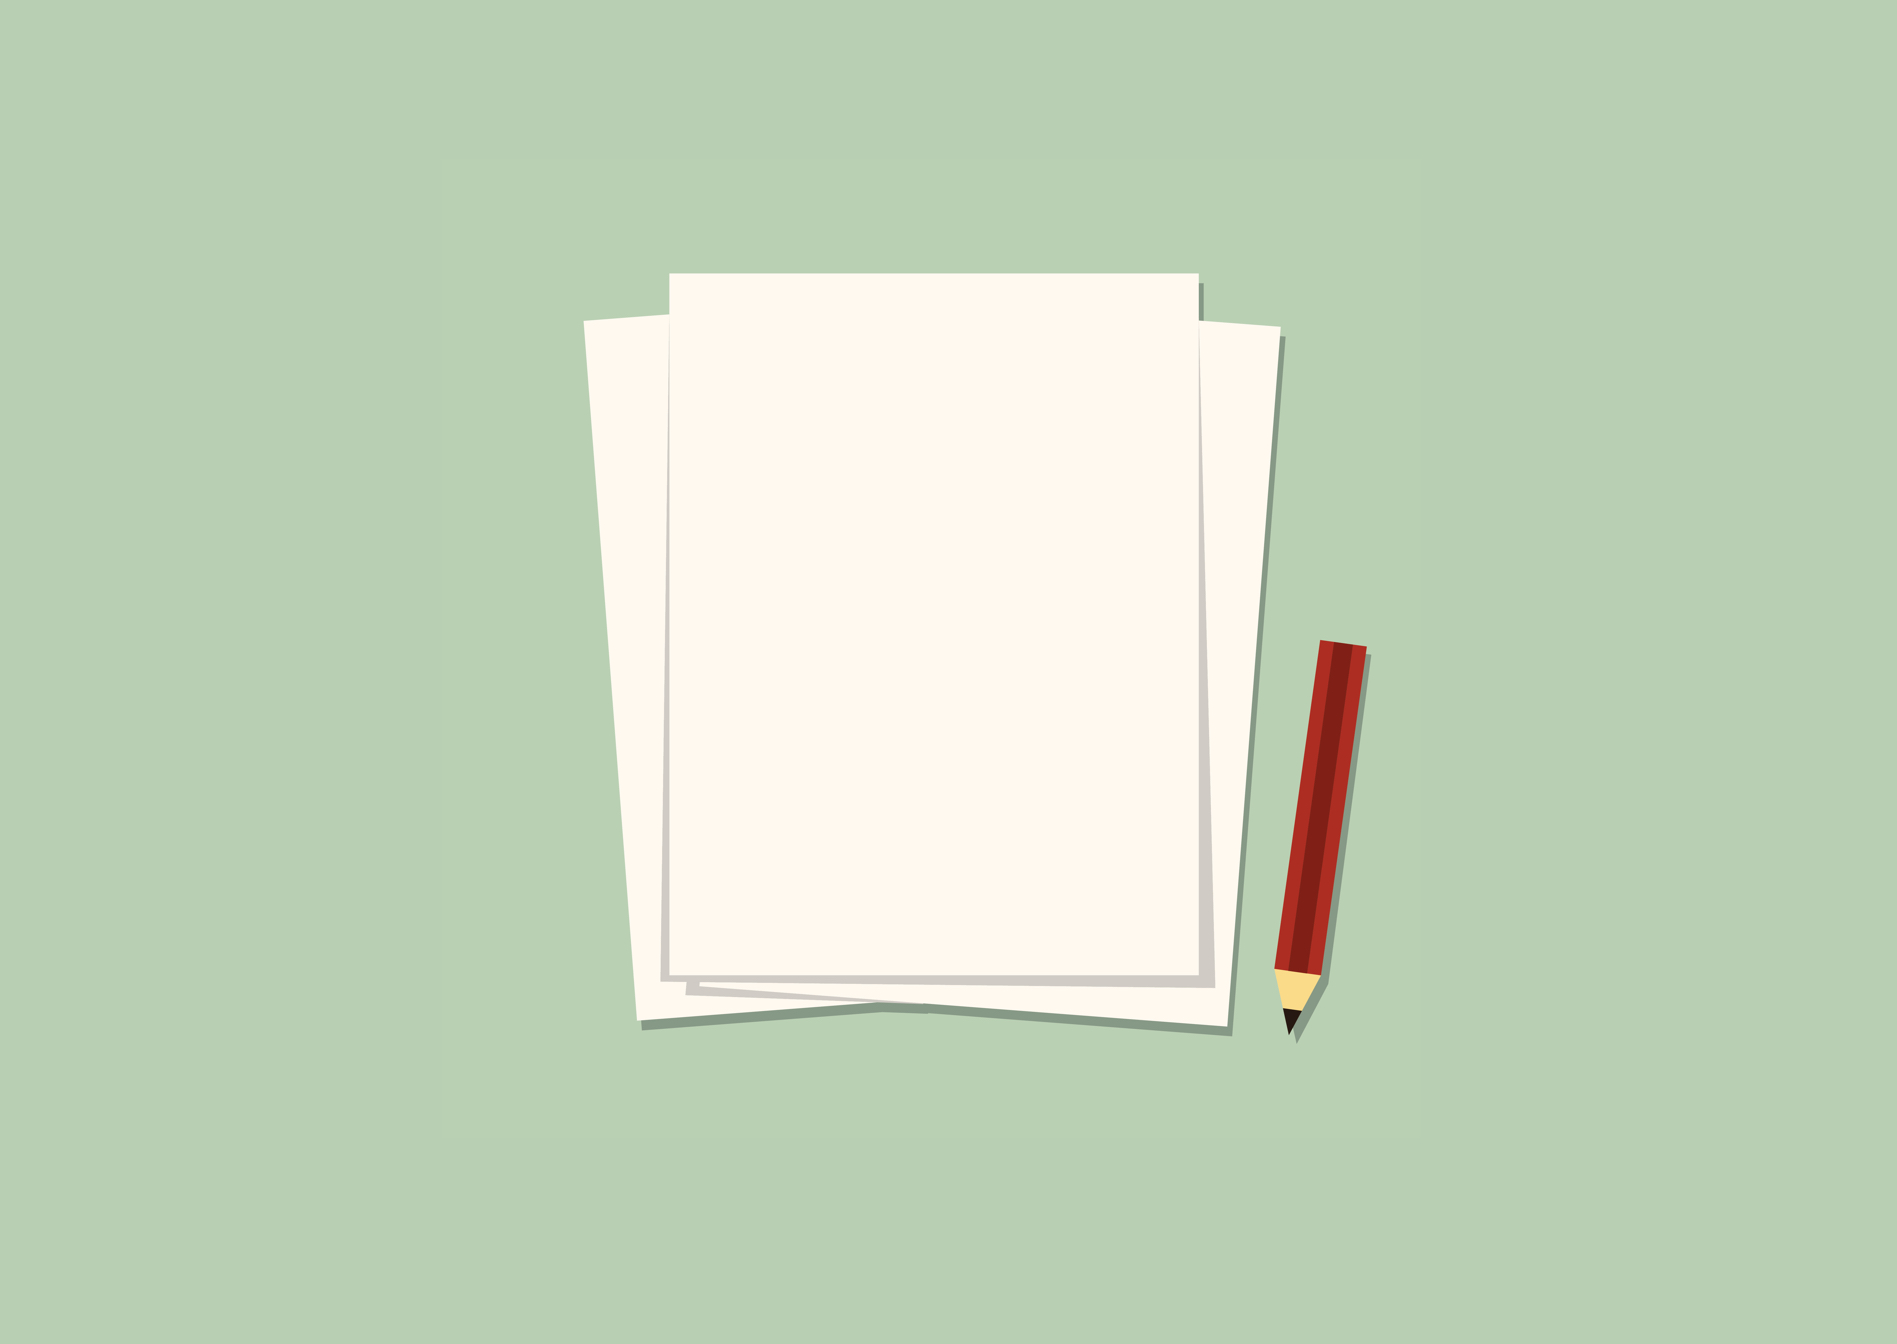 Documents for your company